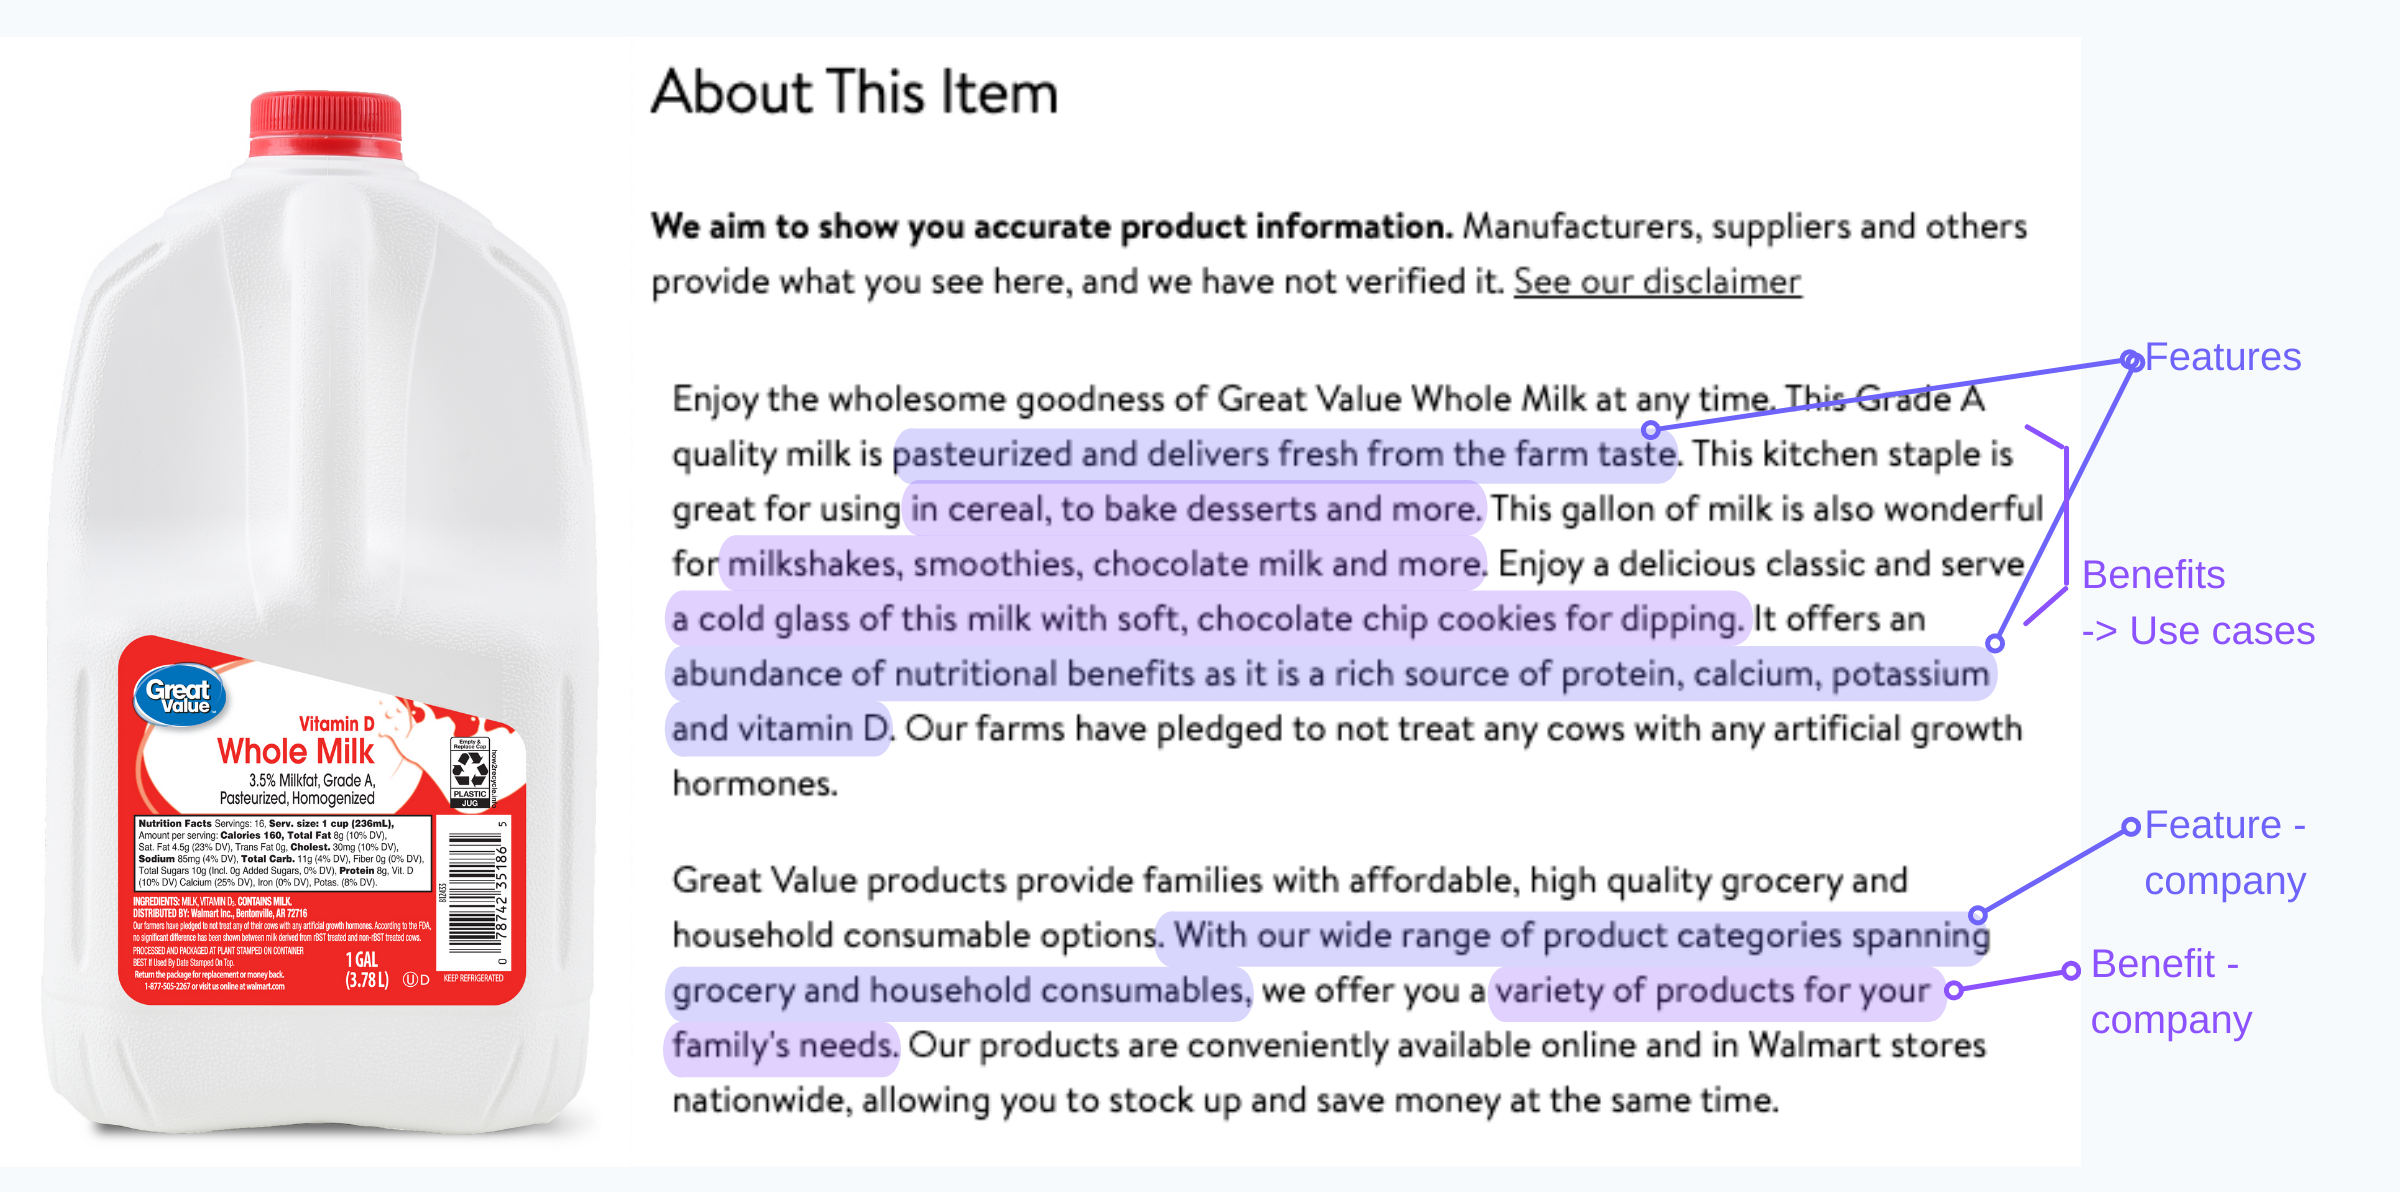 Milk from Walmart, mundane product with feature-benefit product description